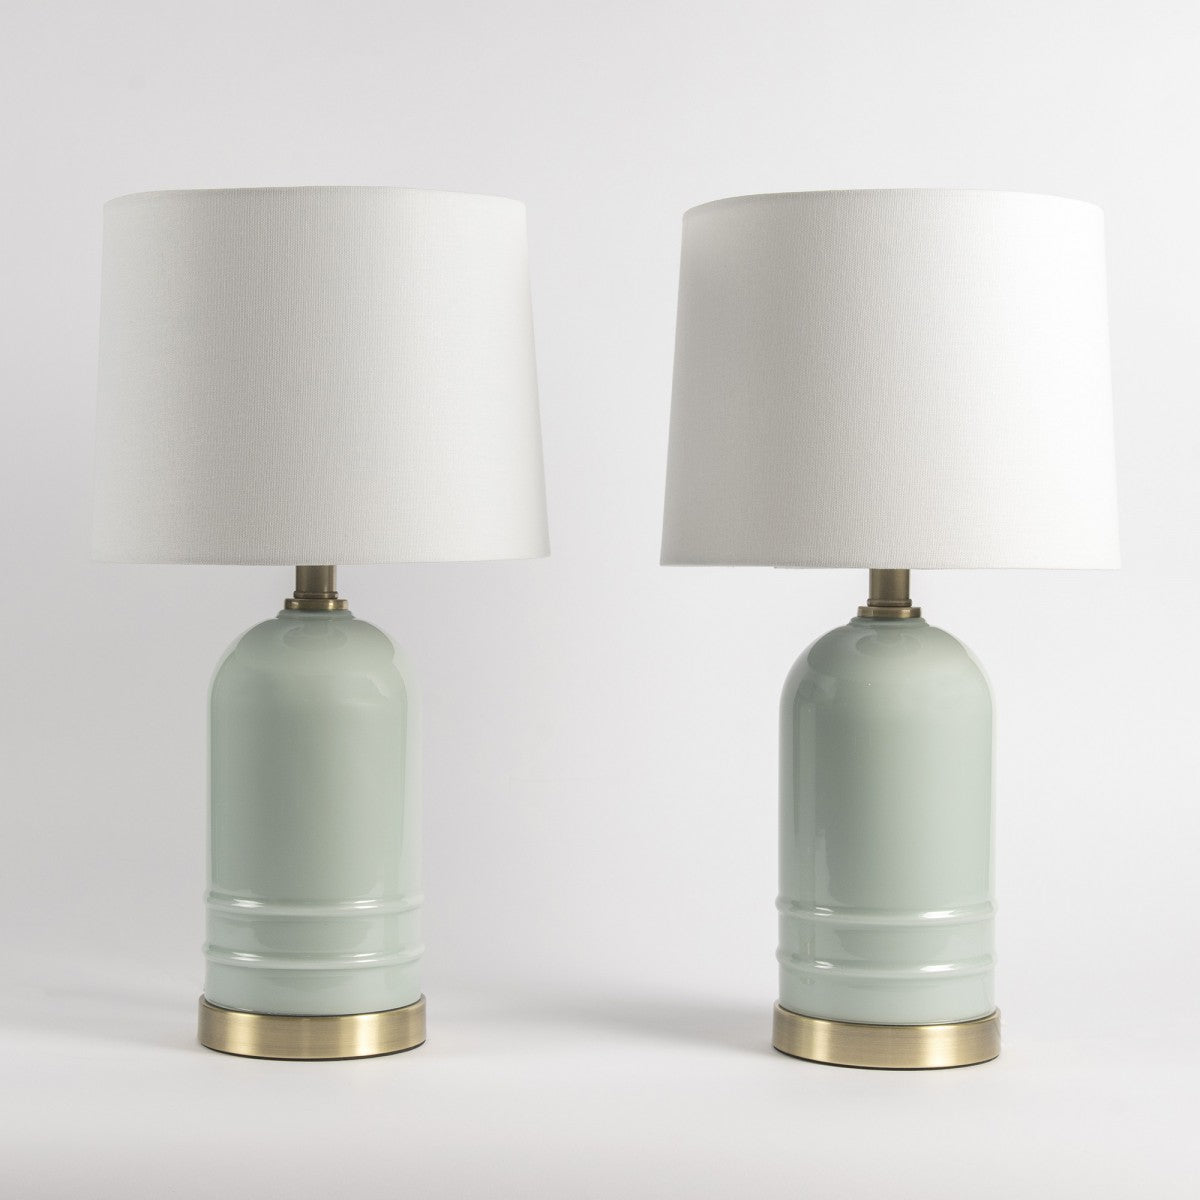 Blue Glass Lamps with White Shade